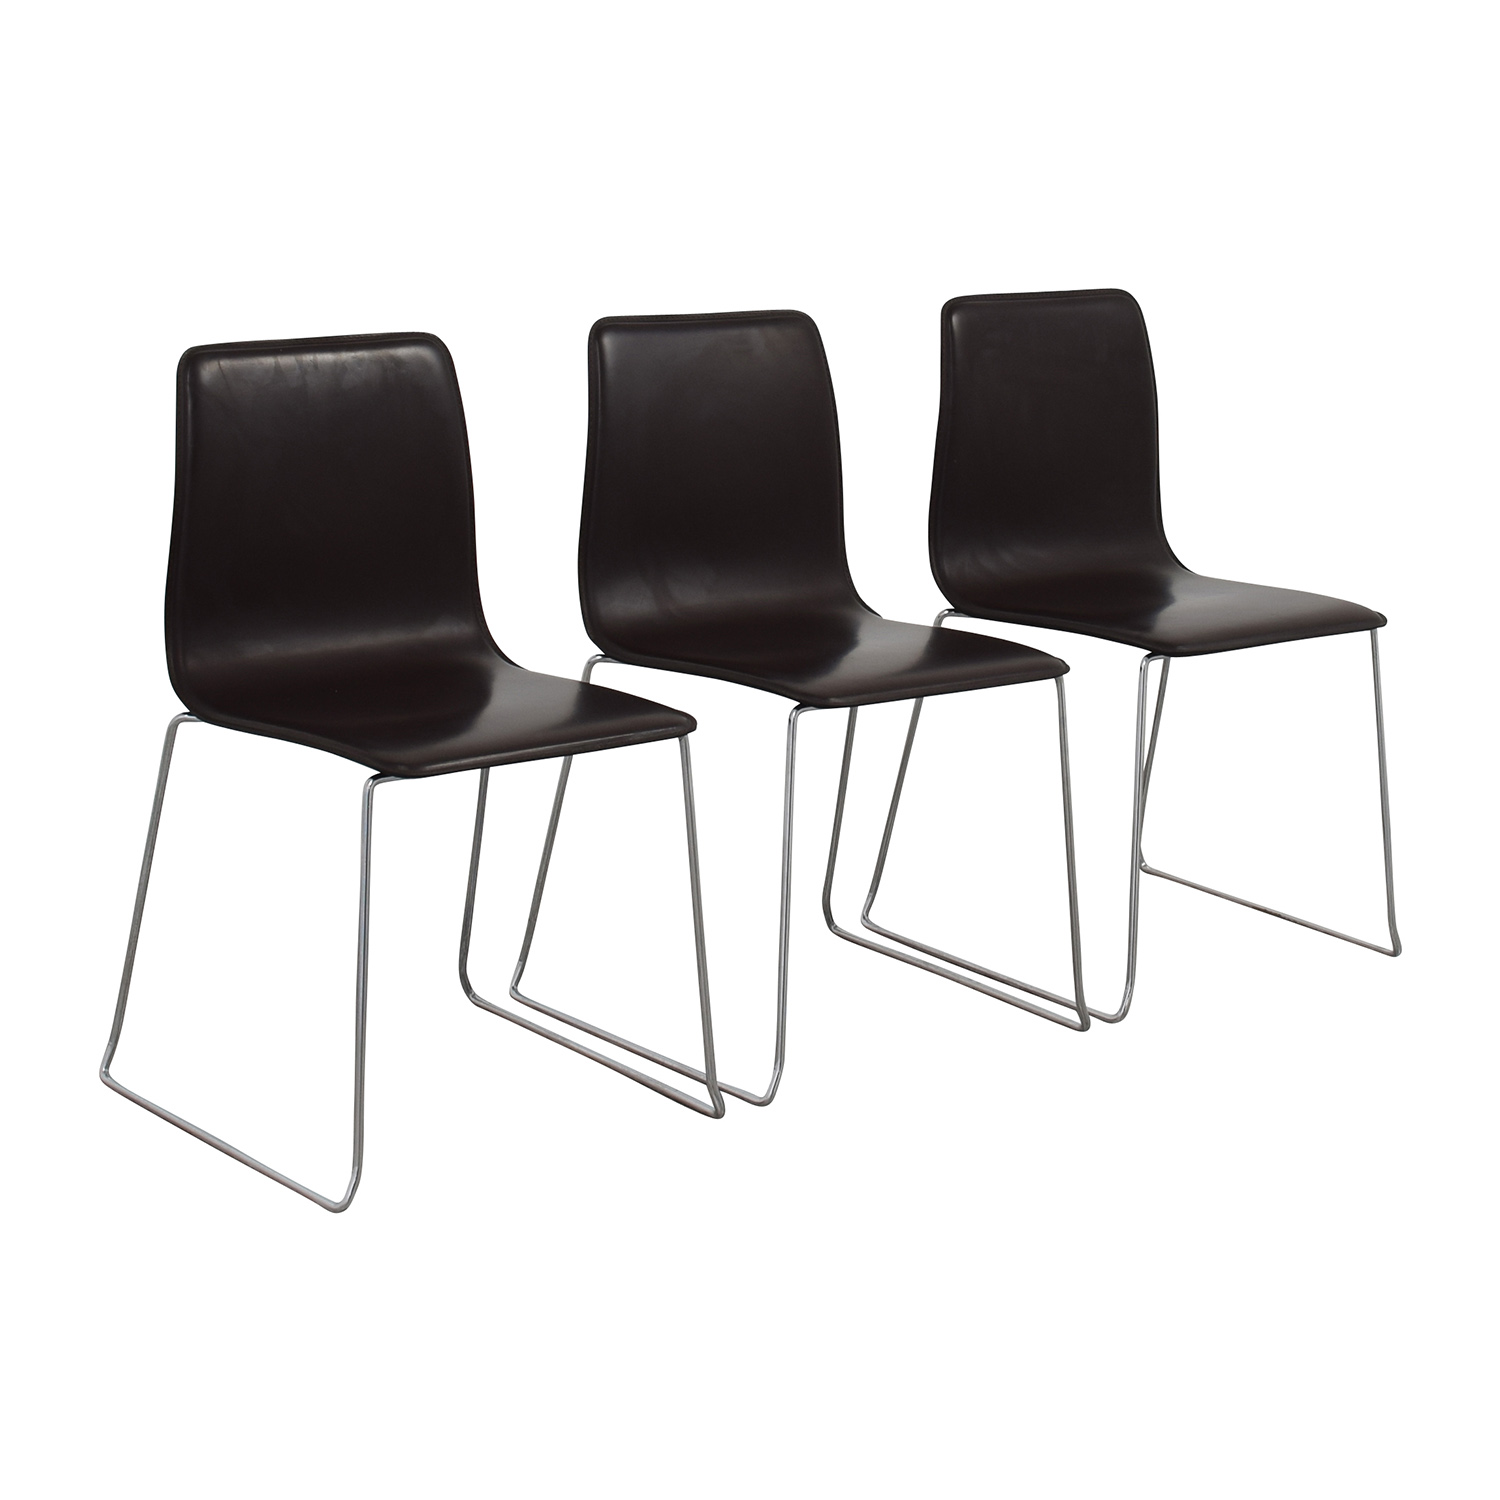 ABC Home & Carpet ABC Home & Carpet Leather and Chrome Chairs, Set of Three second hand